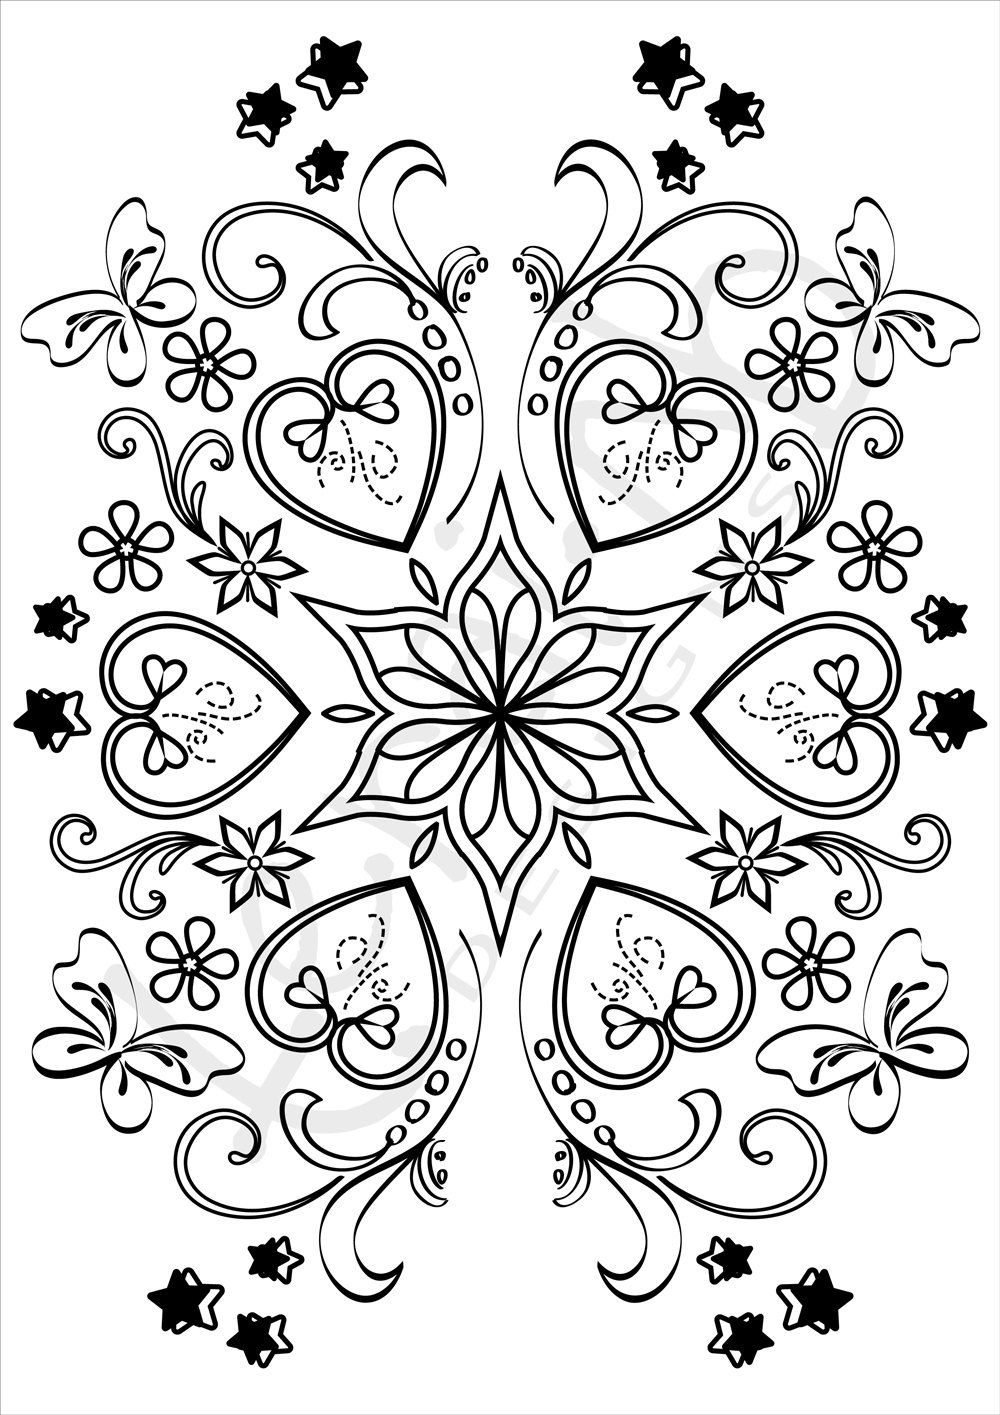 Adult Colouring page. Coloring Page_006.Jpeg by ...